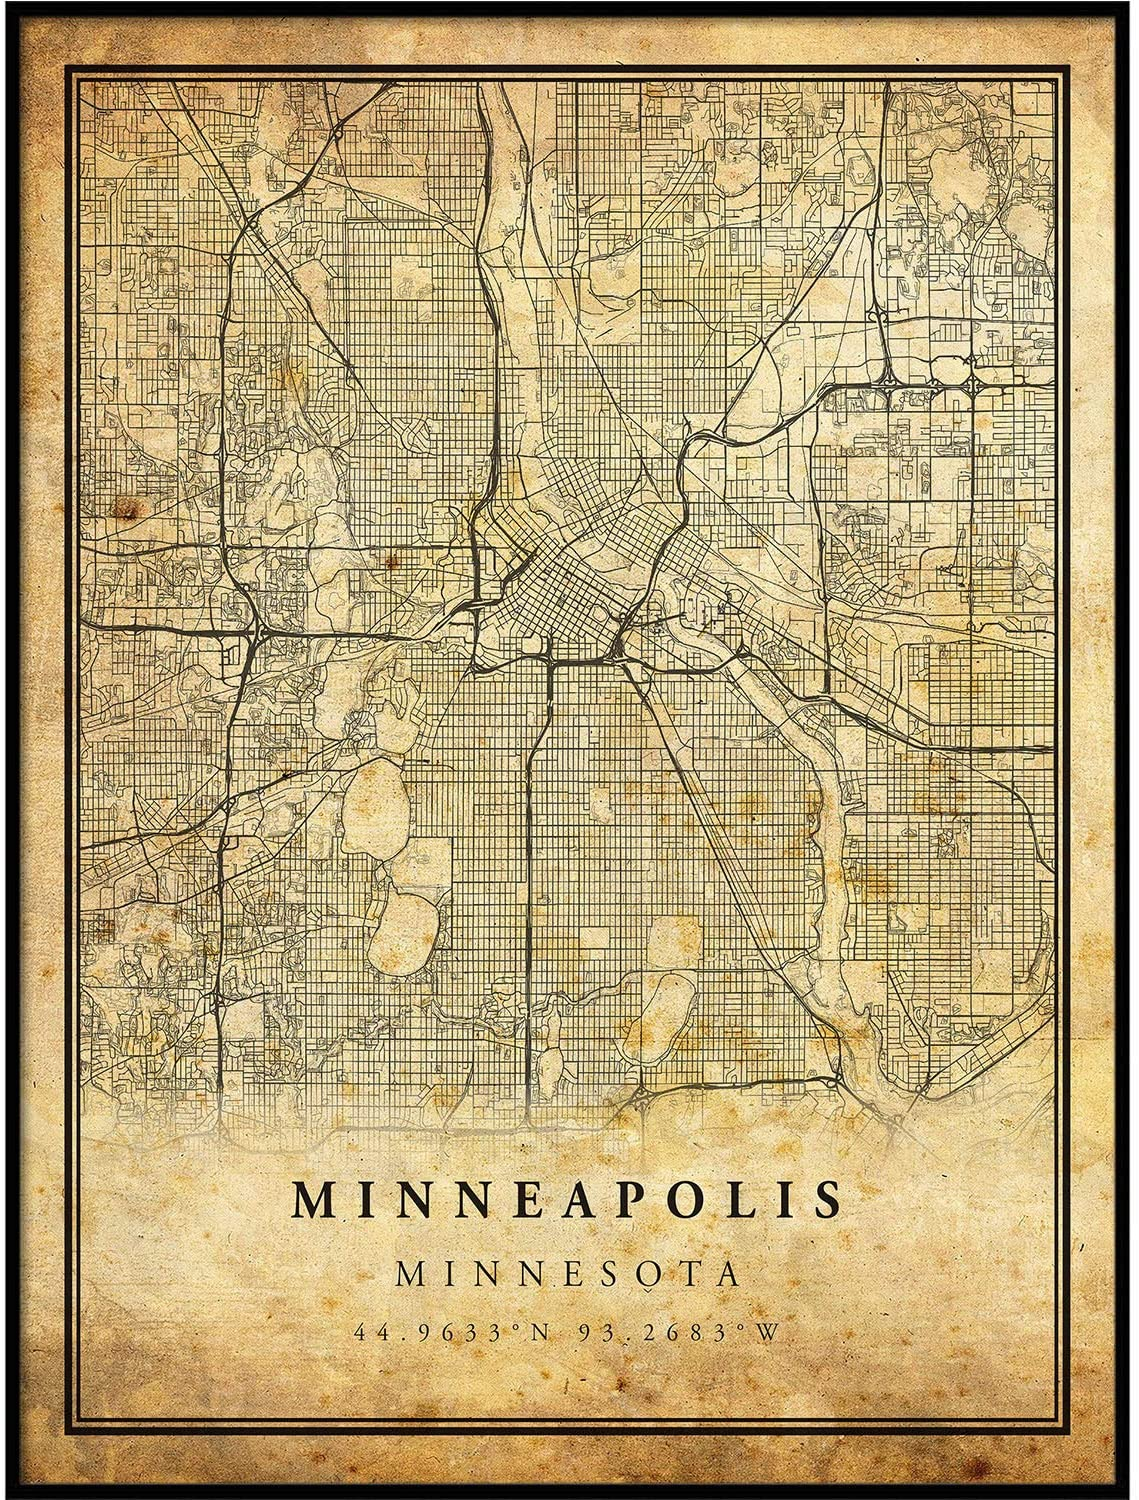 Minneapolis map Vintage Style Poster Print | Old City Artwork Prints | Antique Style Home Decor | Minnesota Wall Art Gift | map Painting 11x14